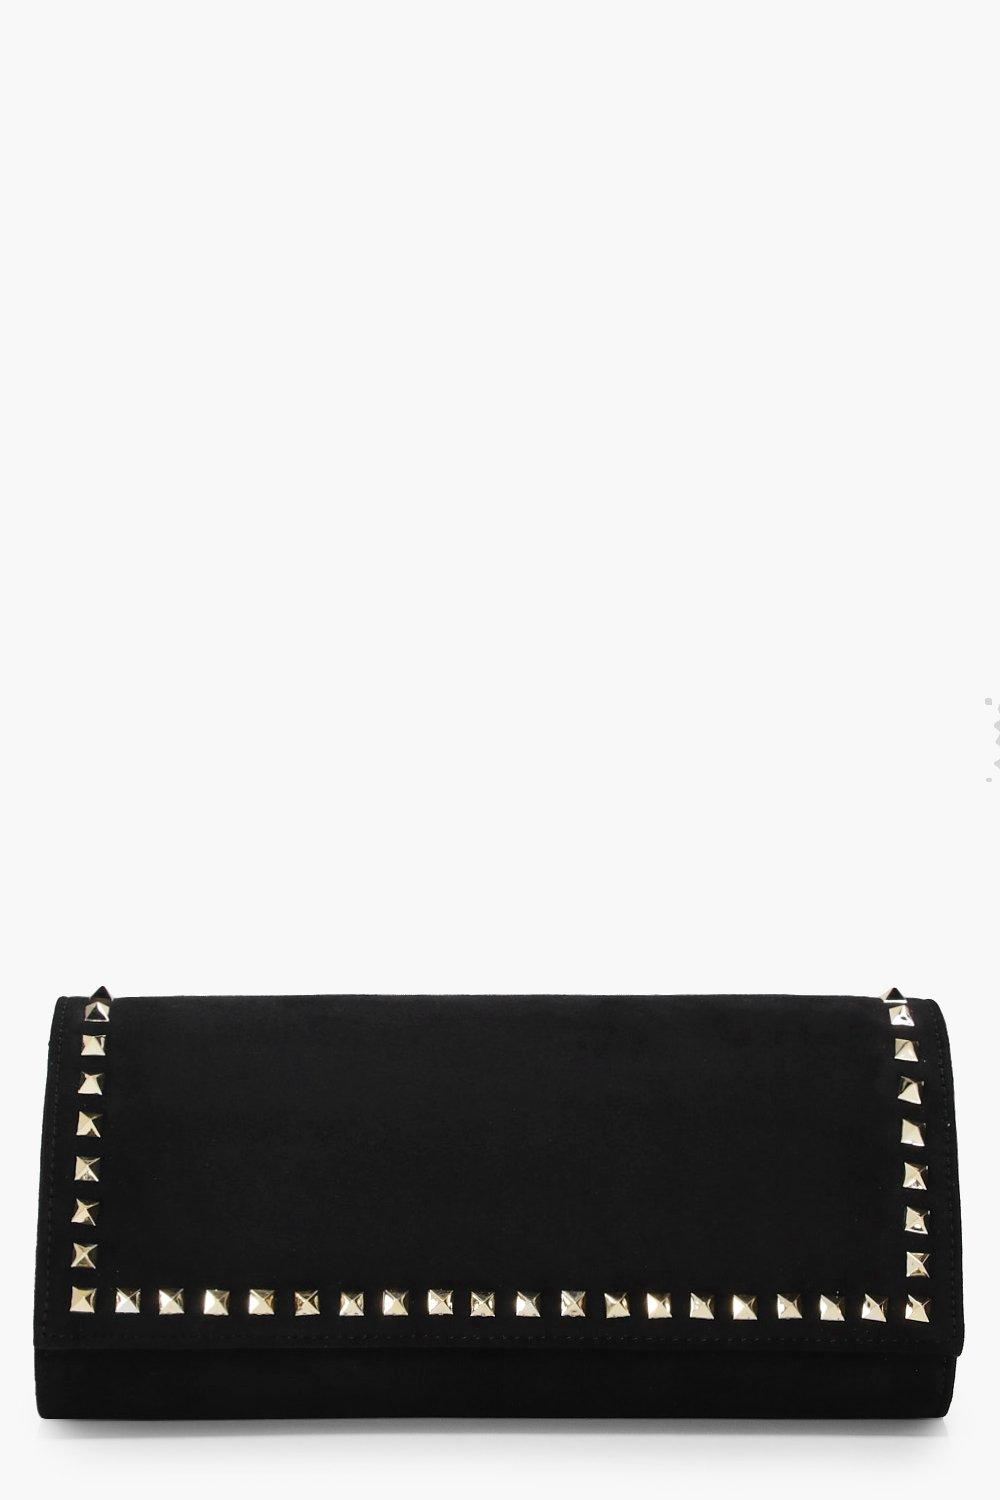 Studded Clutch - black - Erin Studded Clutch - bla